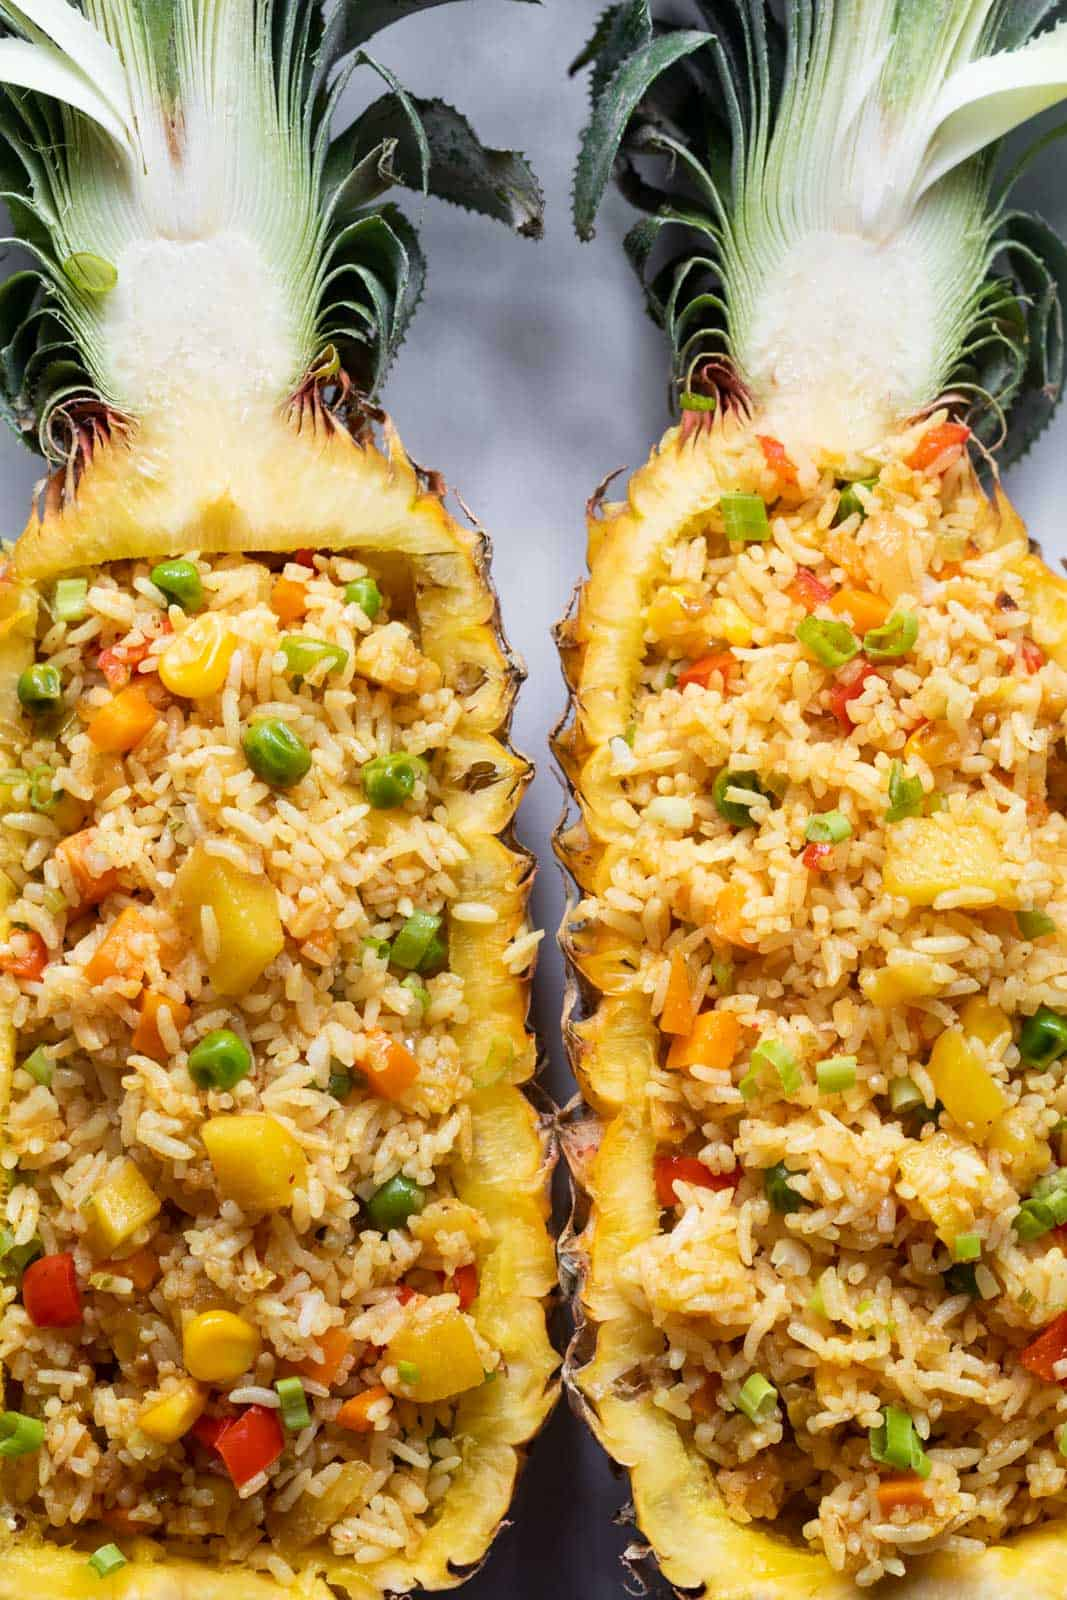 Thai Pineapple fried rice served in pineapple boats